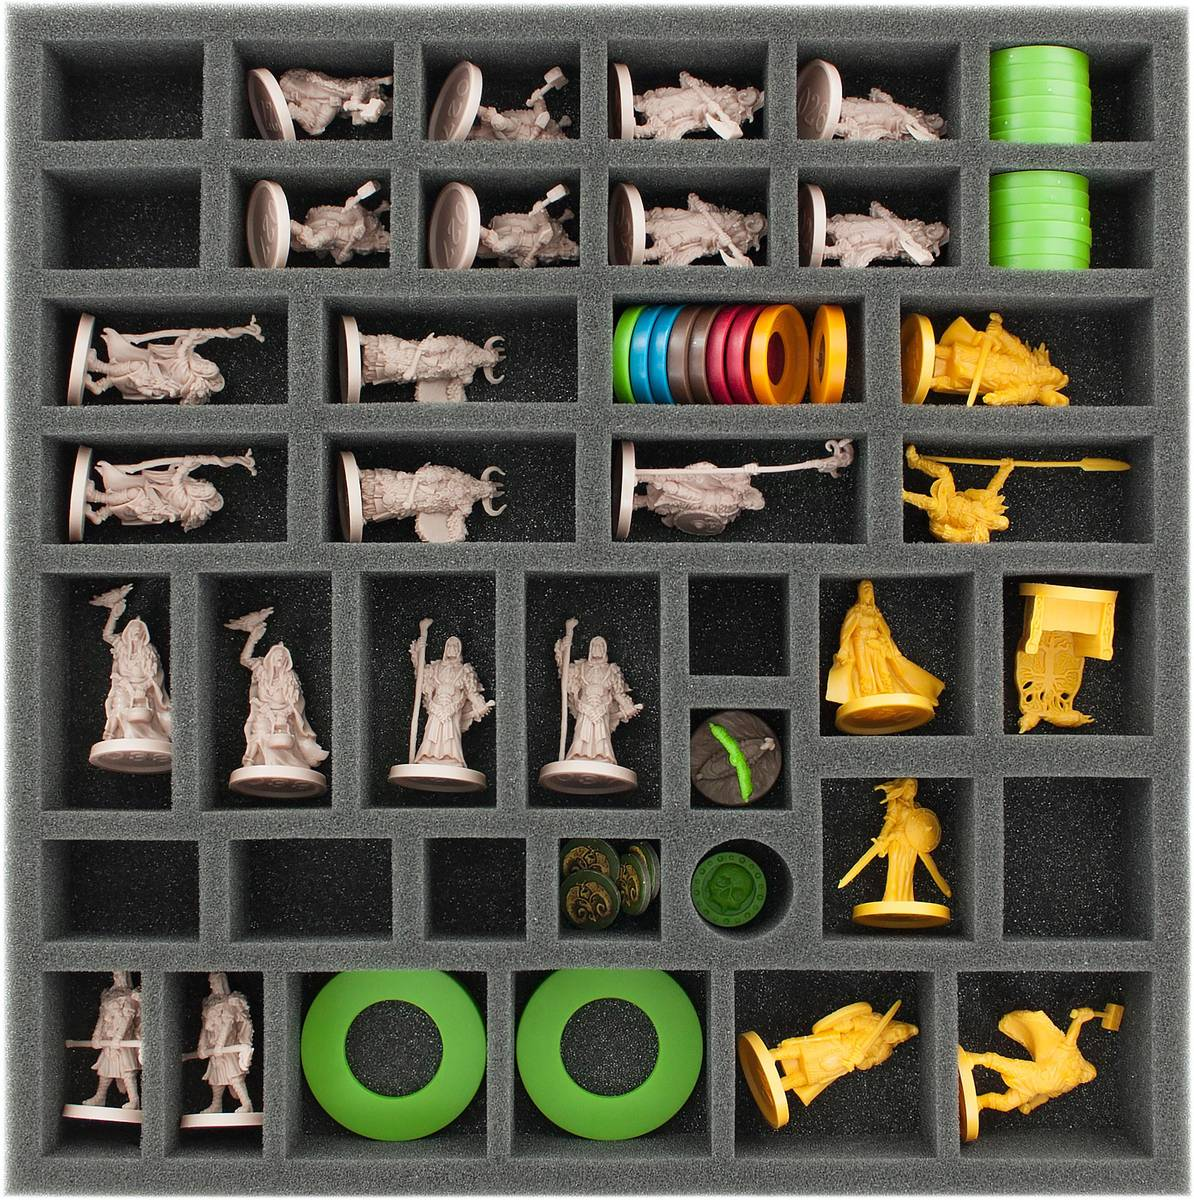 AG040BR04 40 mm foam tray for Blood Rage expansions: 5th player, Gods and Mystics